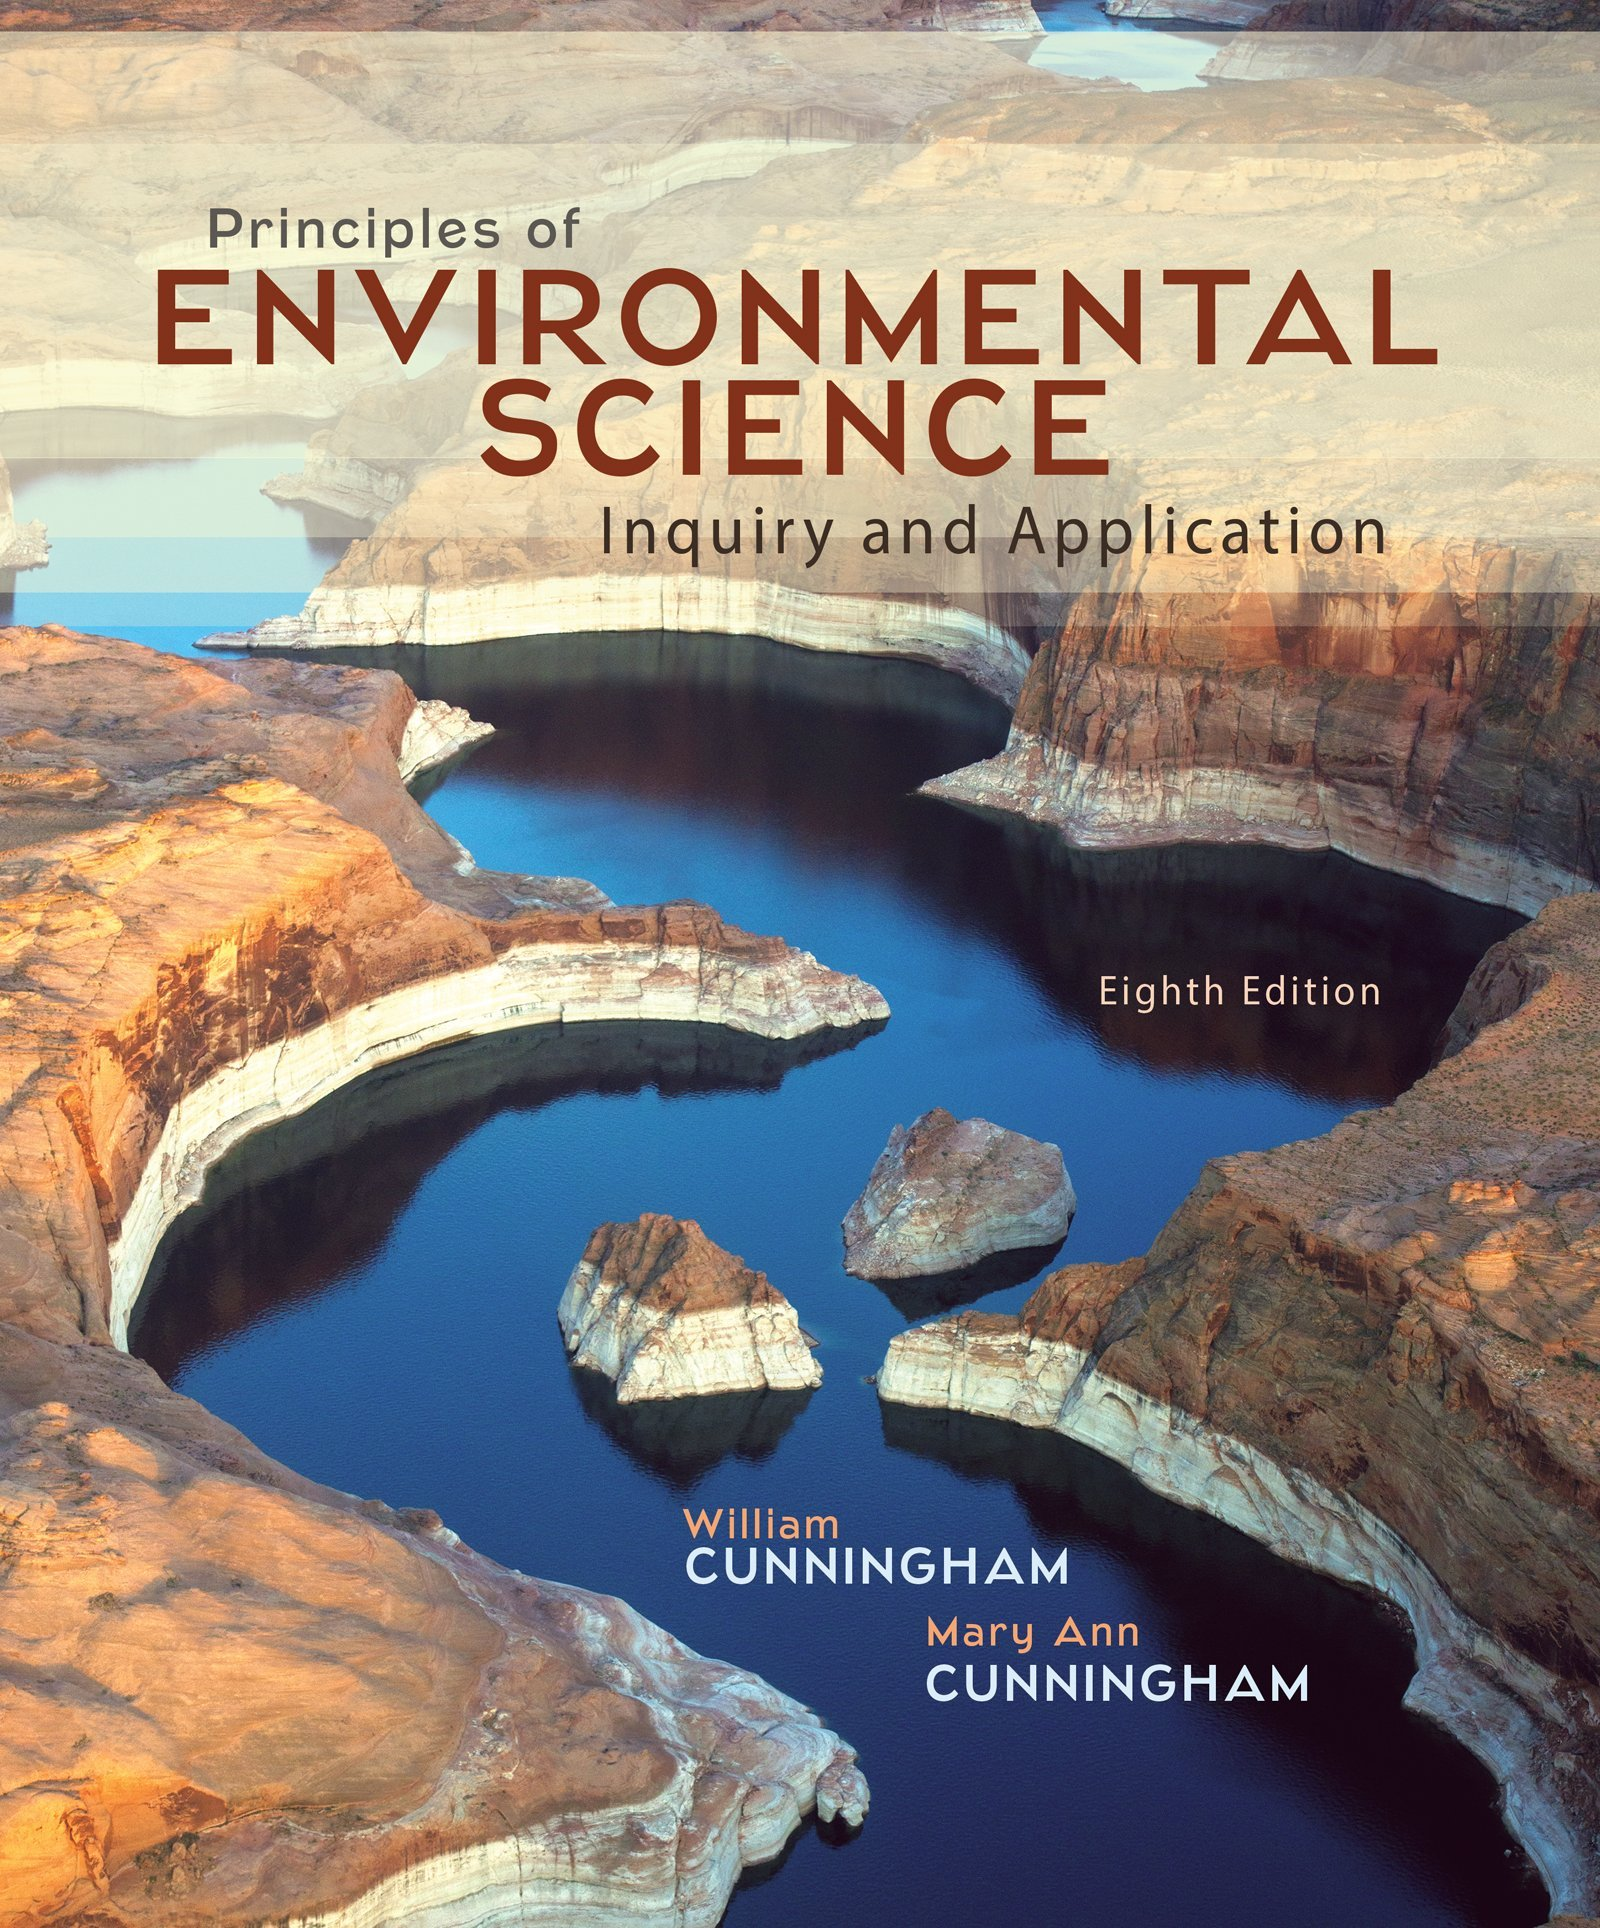 Principles of Environmental Science by McGraw-Hill Education